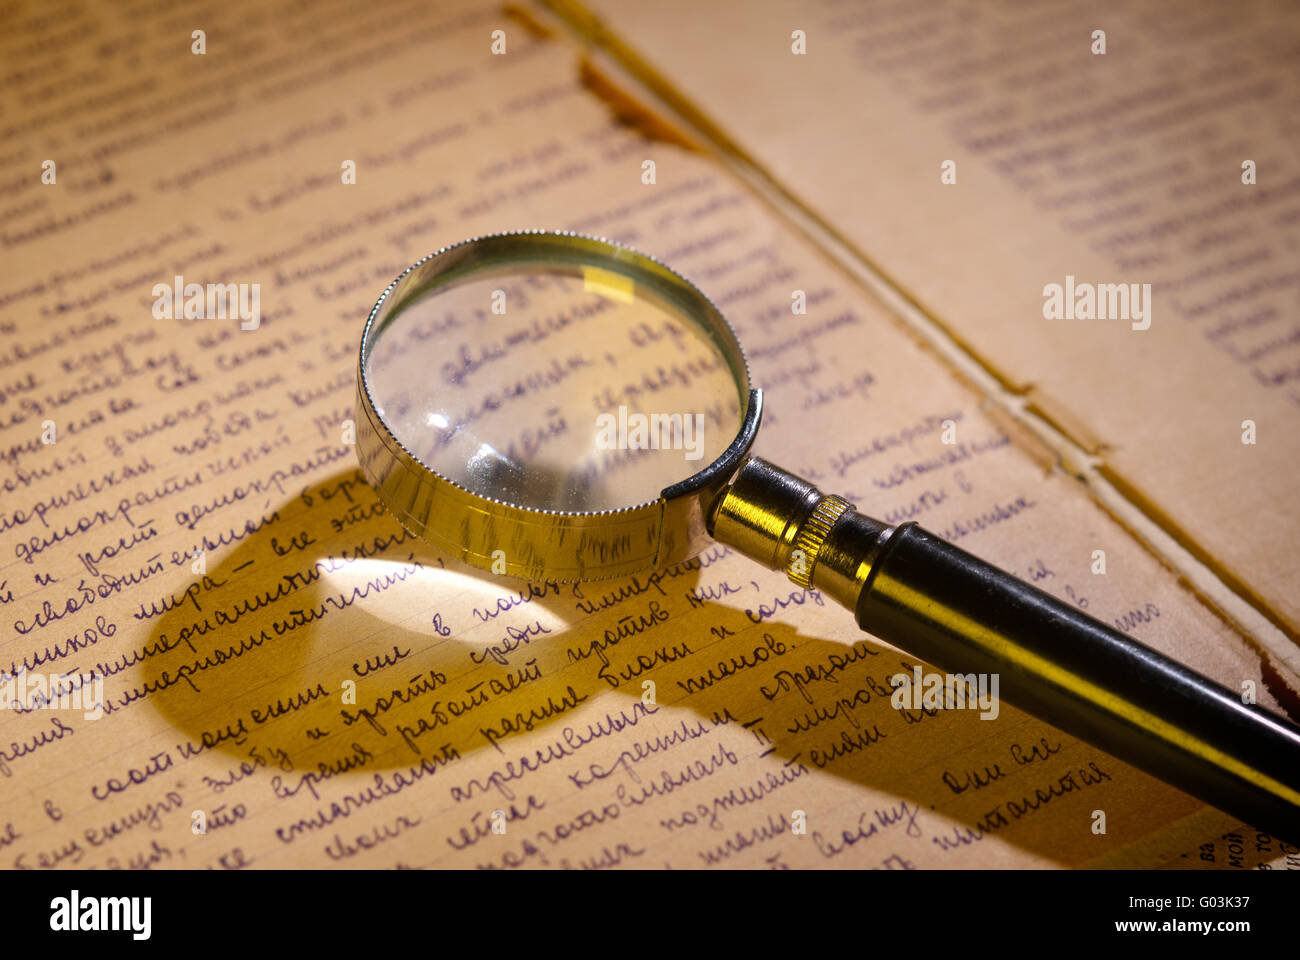 Magnifier glass on page of ancient manuscript - Stock Image